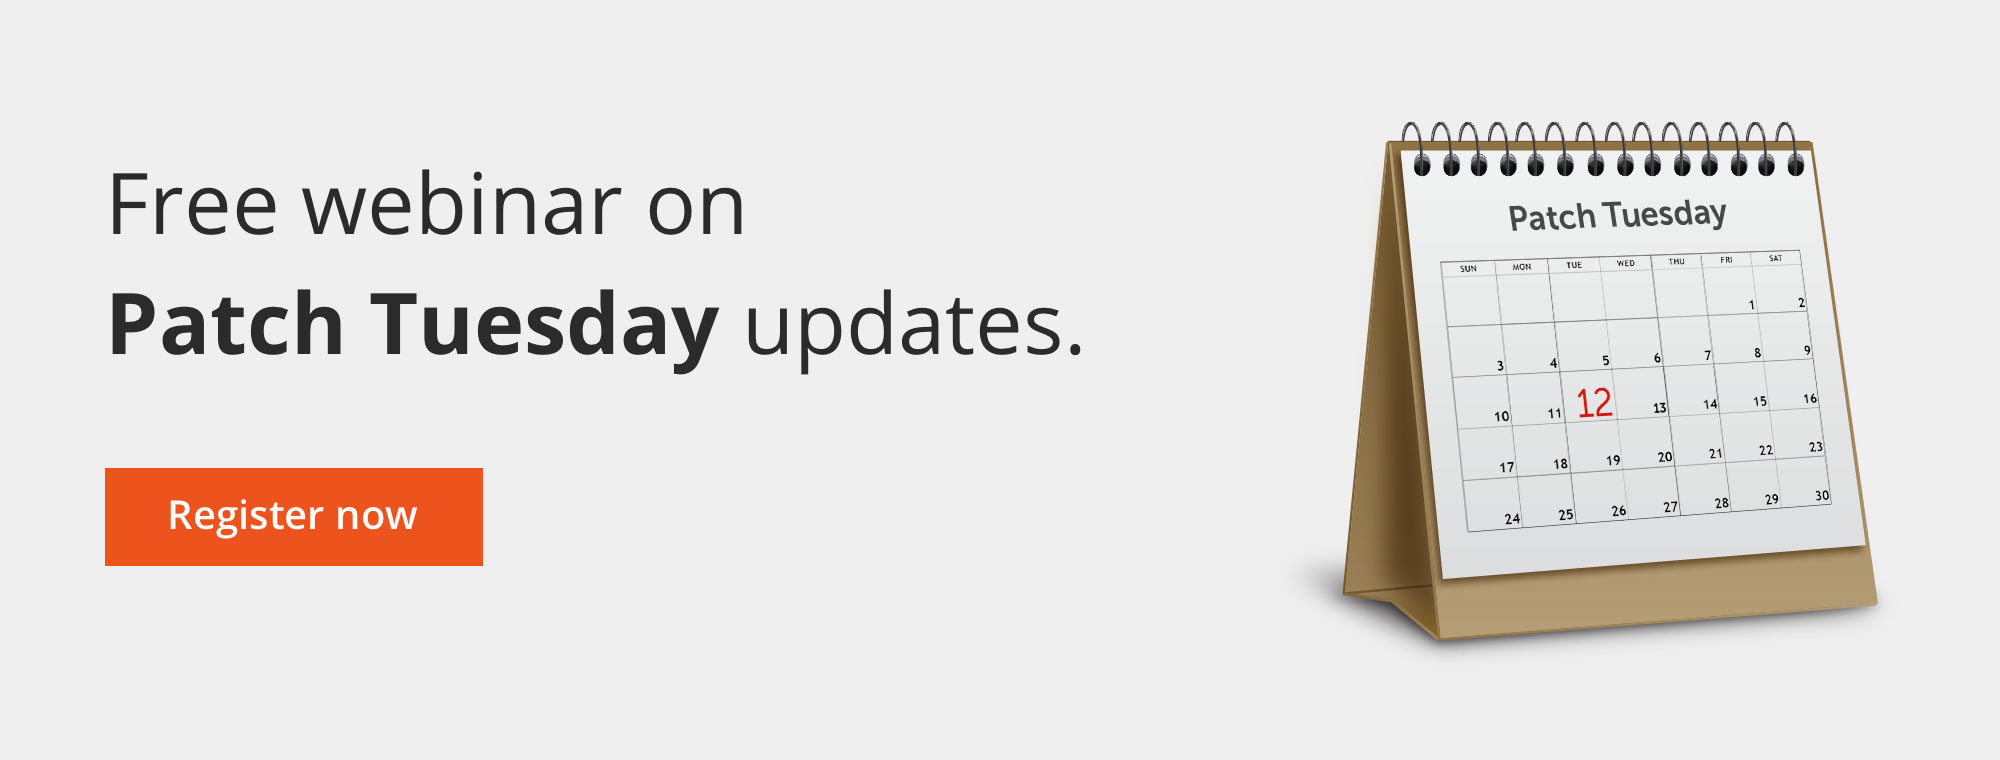 Free webinar on Patch Tuesday updates.